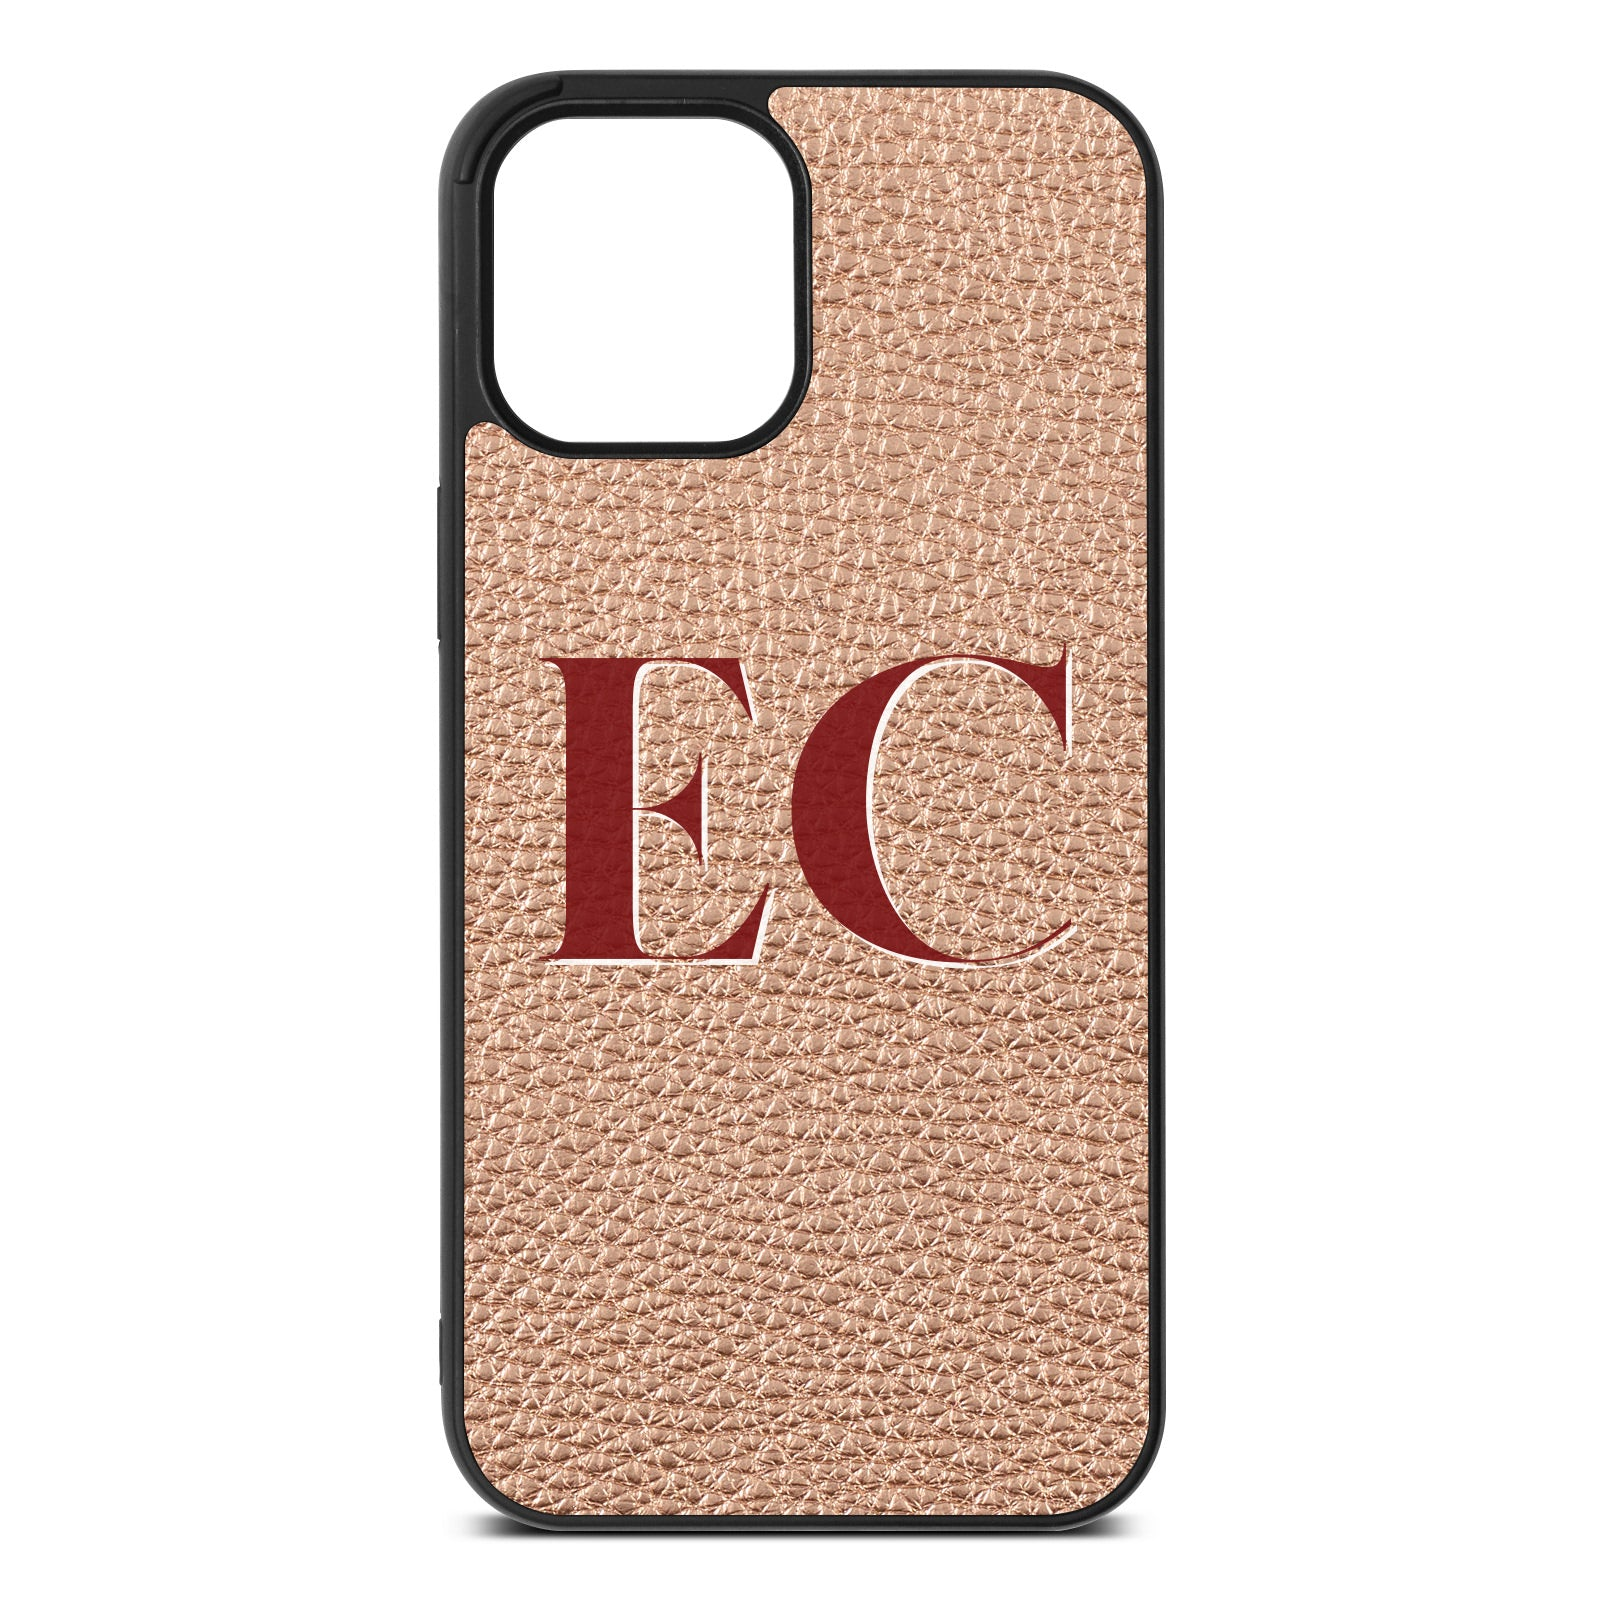 iPhone 12 Pro Max Rose Gold Pebble Leather Case